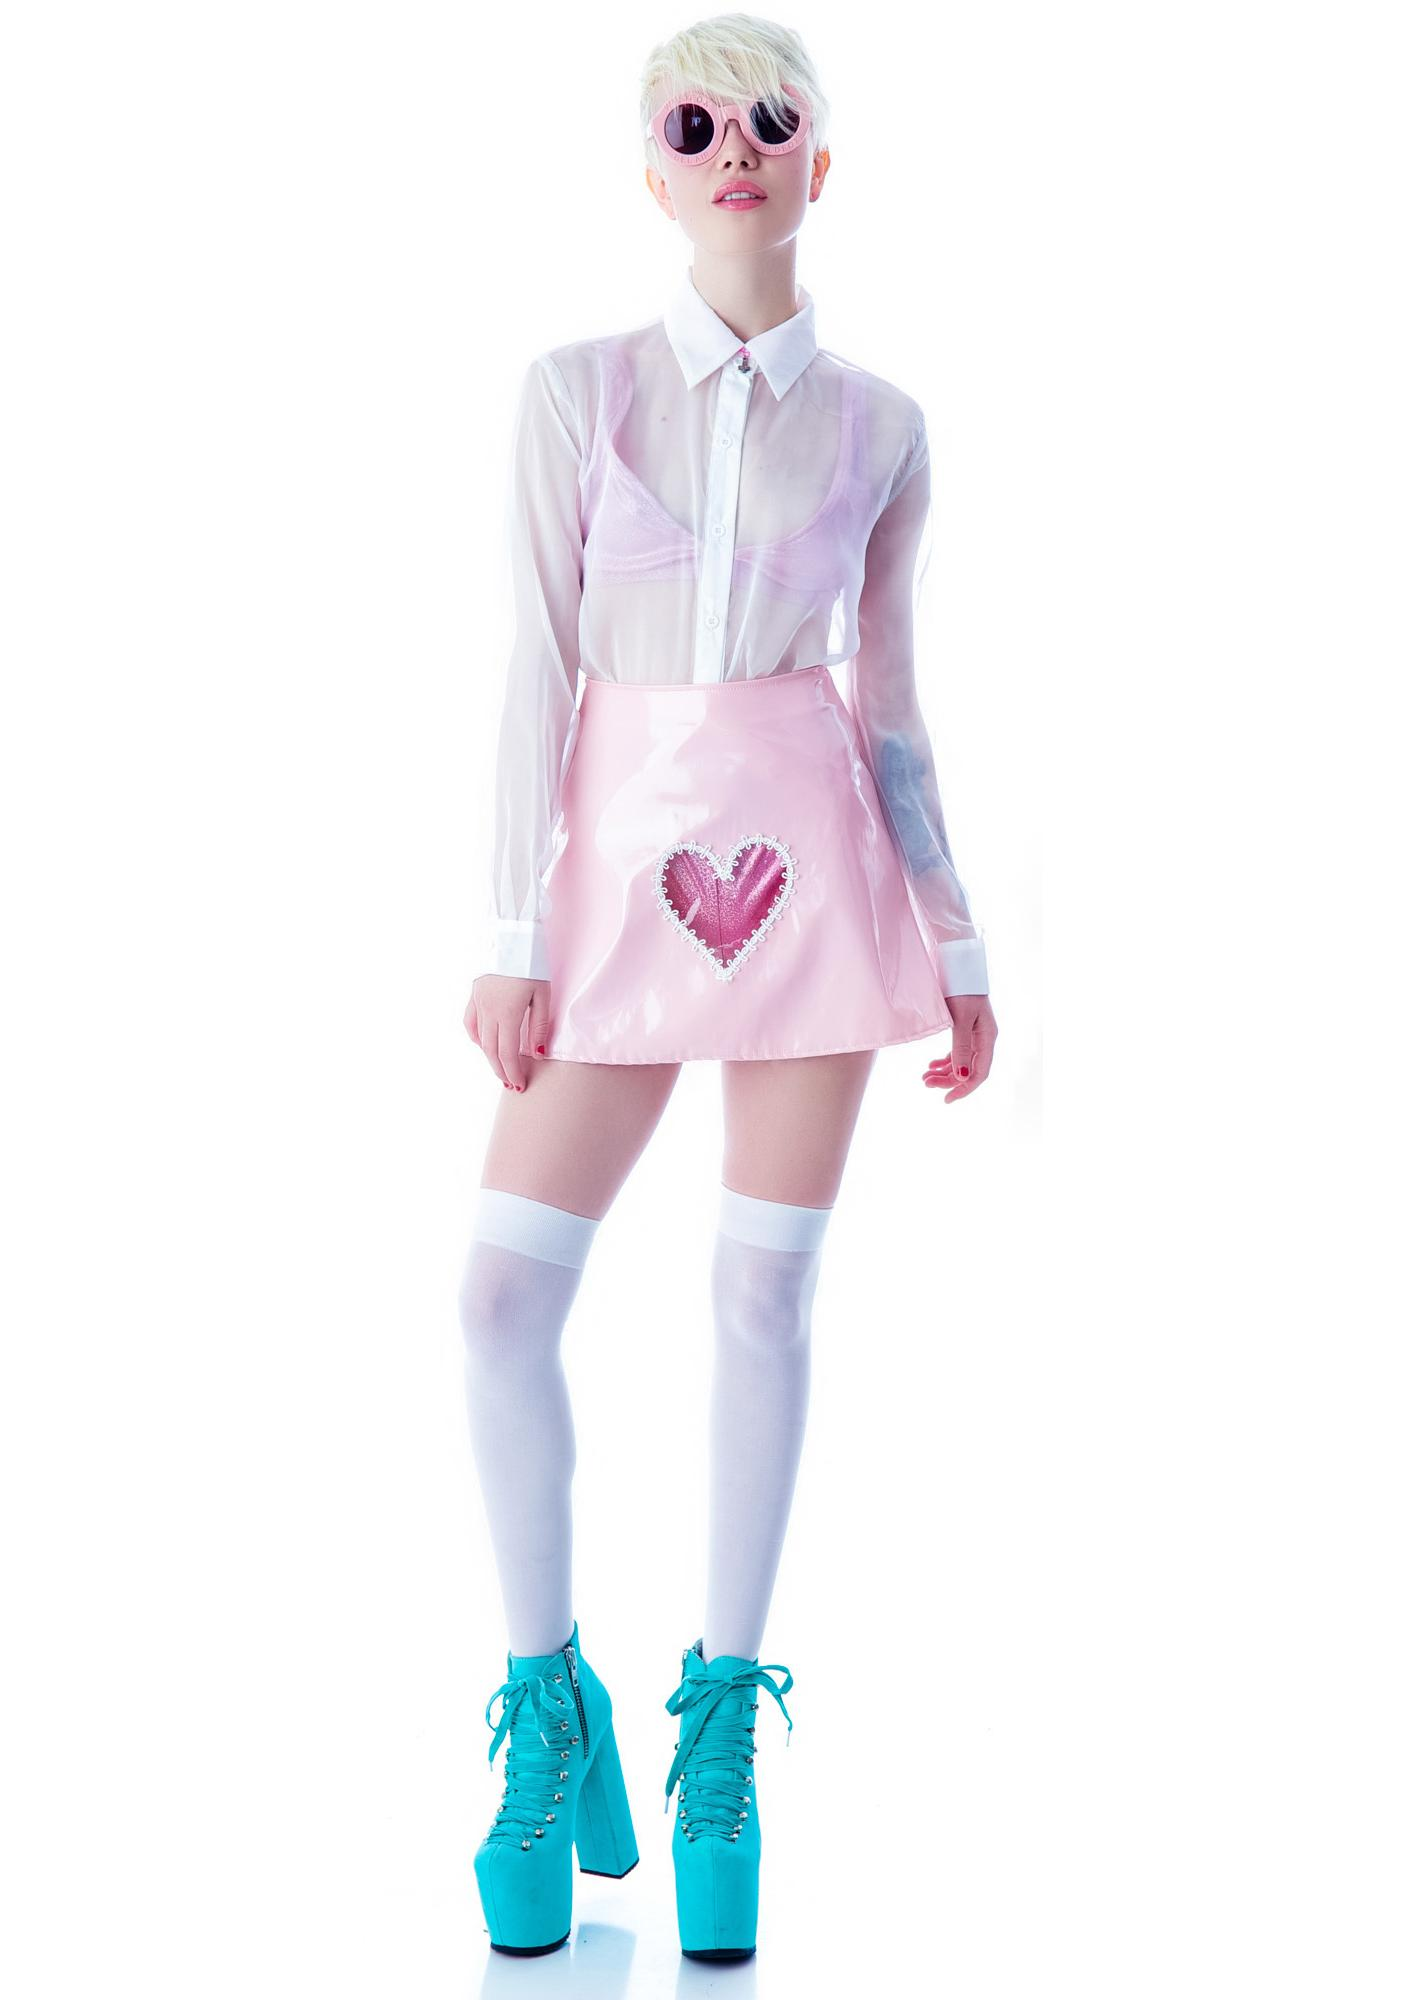 Clear Heart Vinyl Skirt